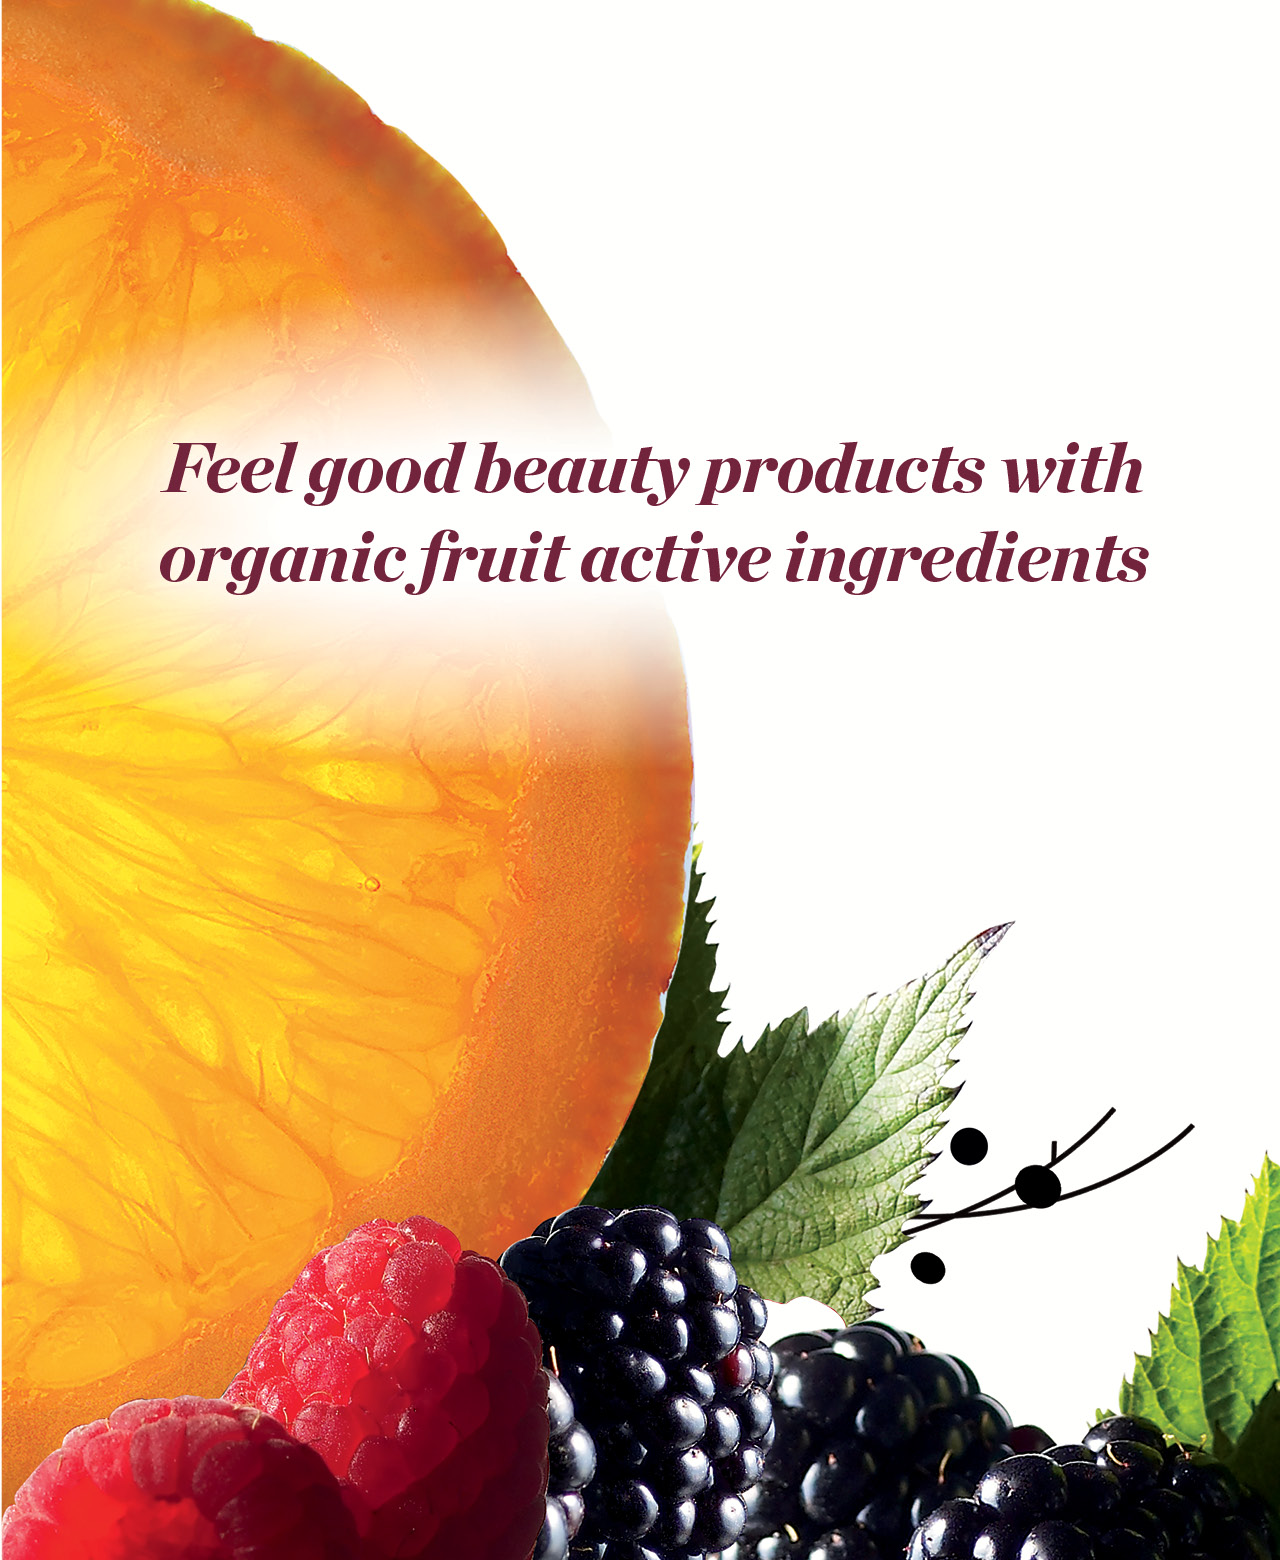 Feel good beauty products with organic fruit active ingredients